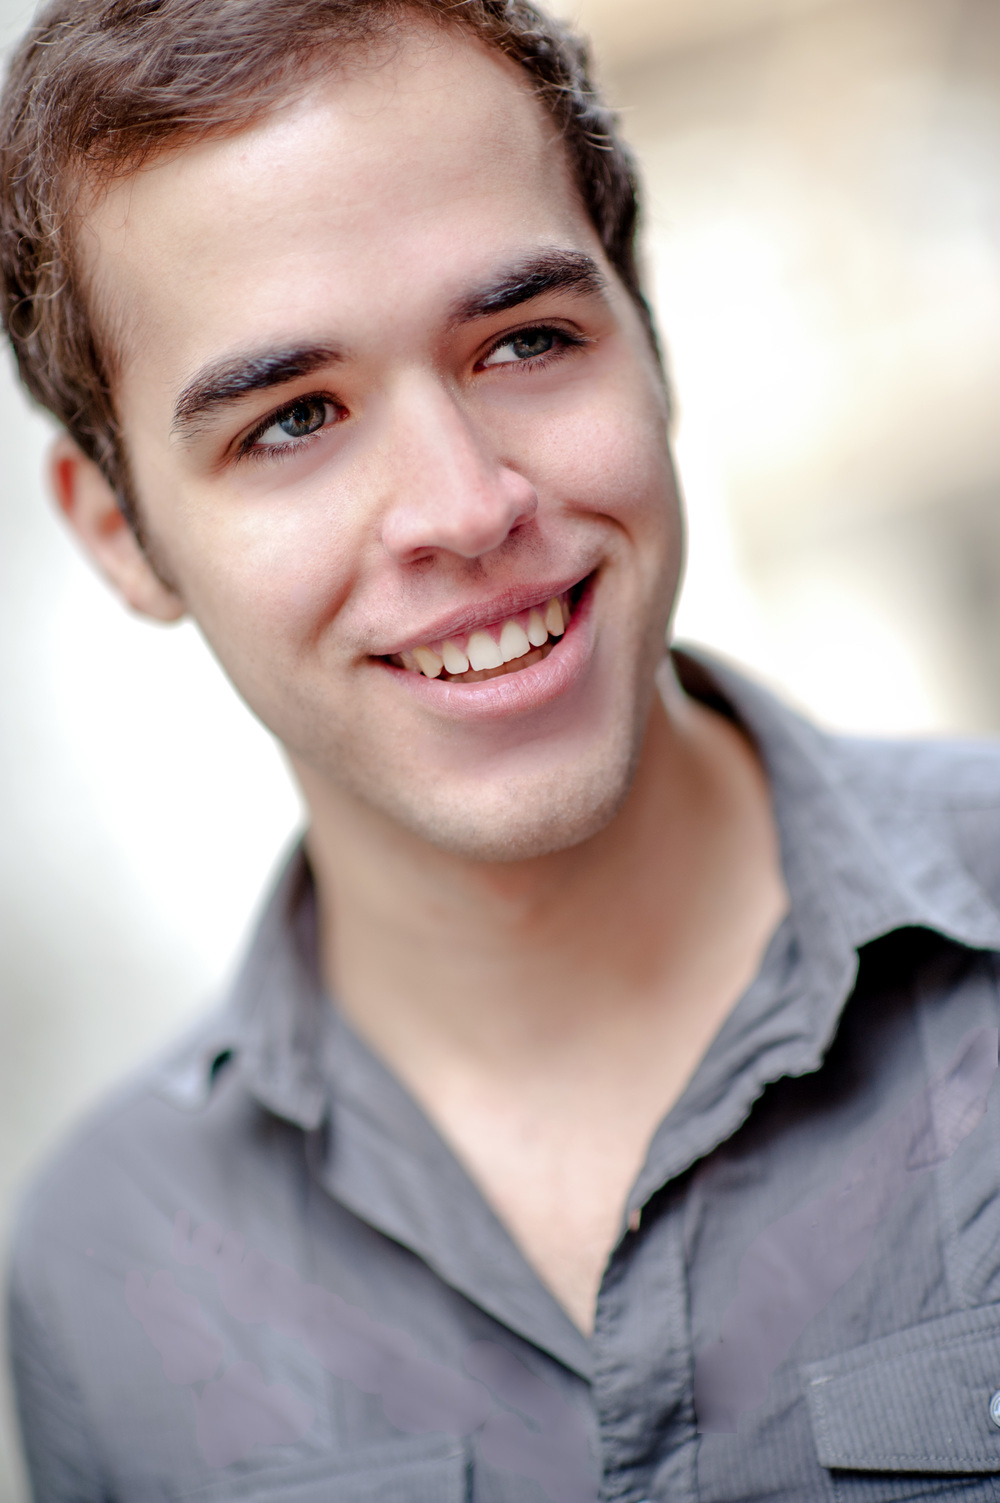 jonathan-mcphail-photography-brooklyn-new-york-nyc-portraits-headshots-commercial-7.jpg